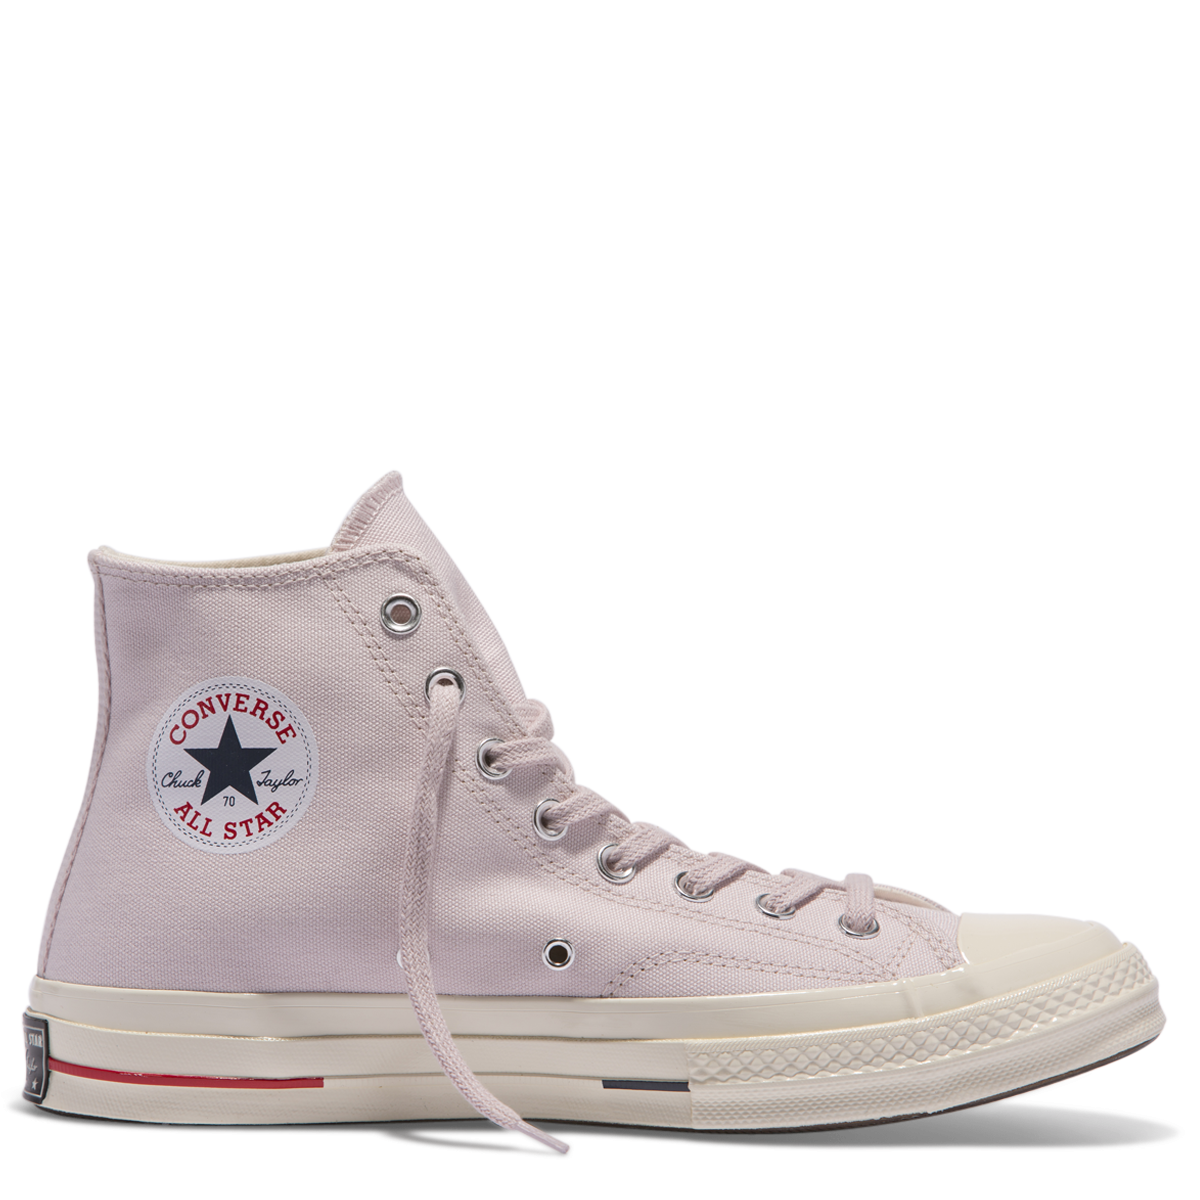 09b60ed9c40a84 CHUCK TAYLOR ALL STAR 70 HERITAGE COURT HIGH TOP – The Common Ground ...